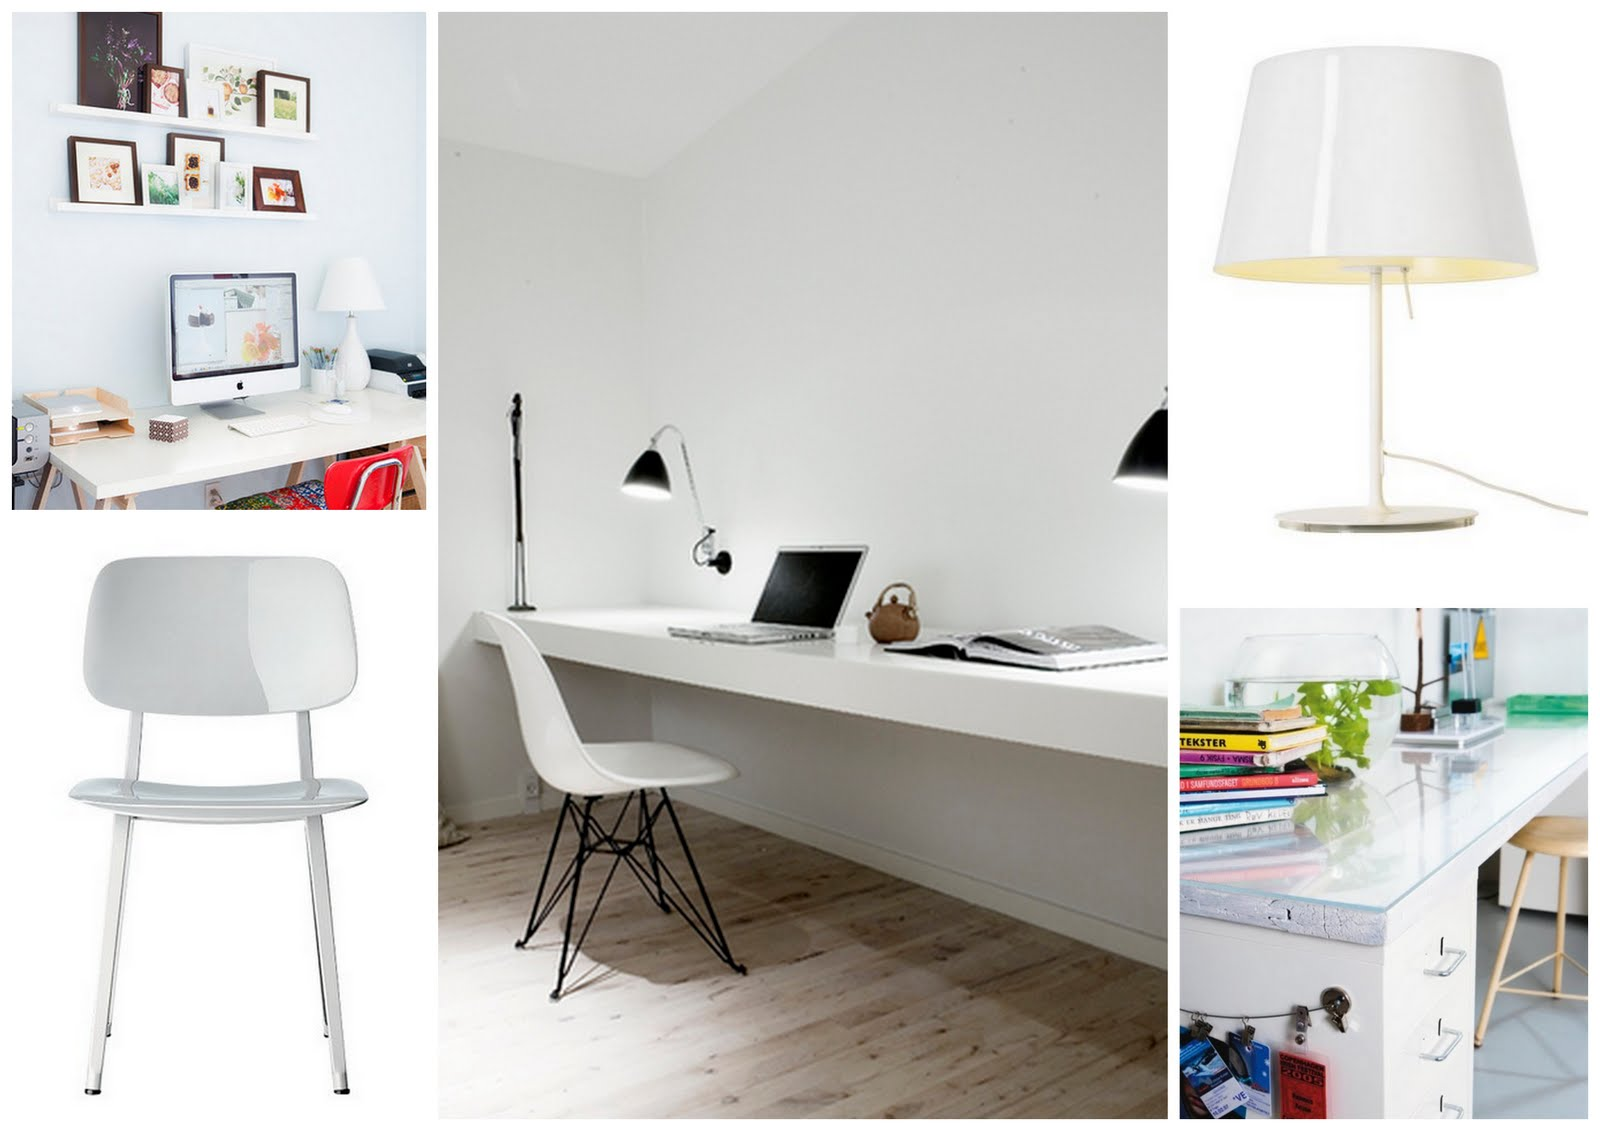 Enchanting Office For Home 2011 Model - Home Decorating Inspiration ...